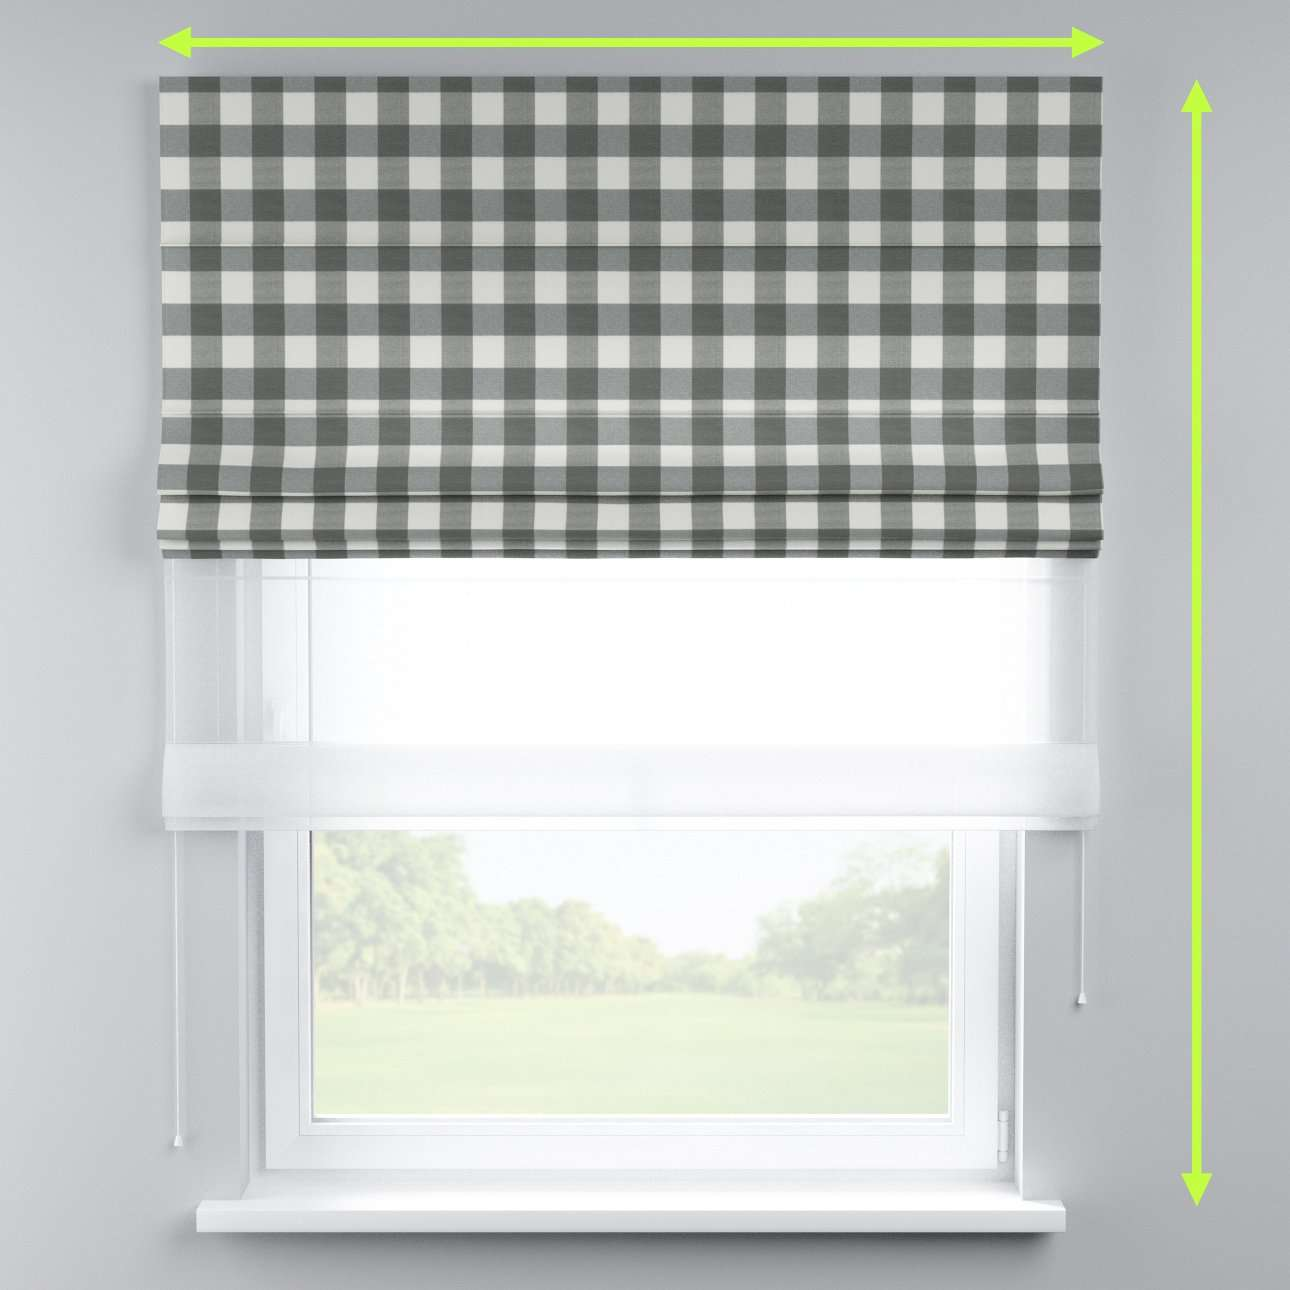 Voile and fabric roman blind (DUO II) in collection Quadro, fabric: 136-13